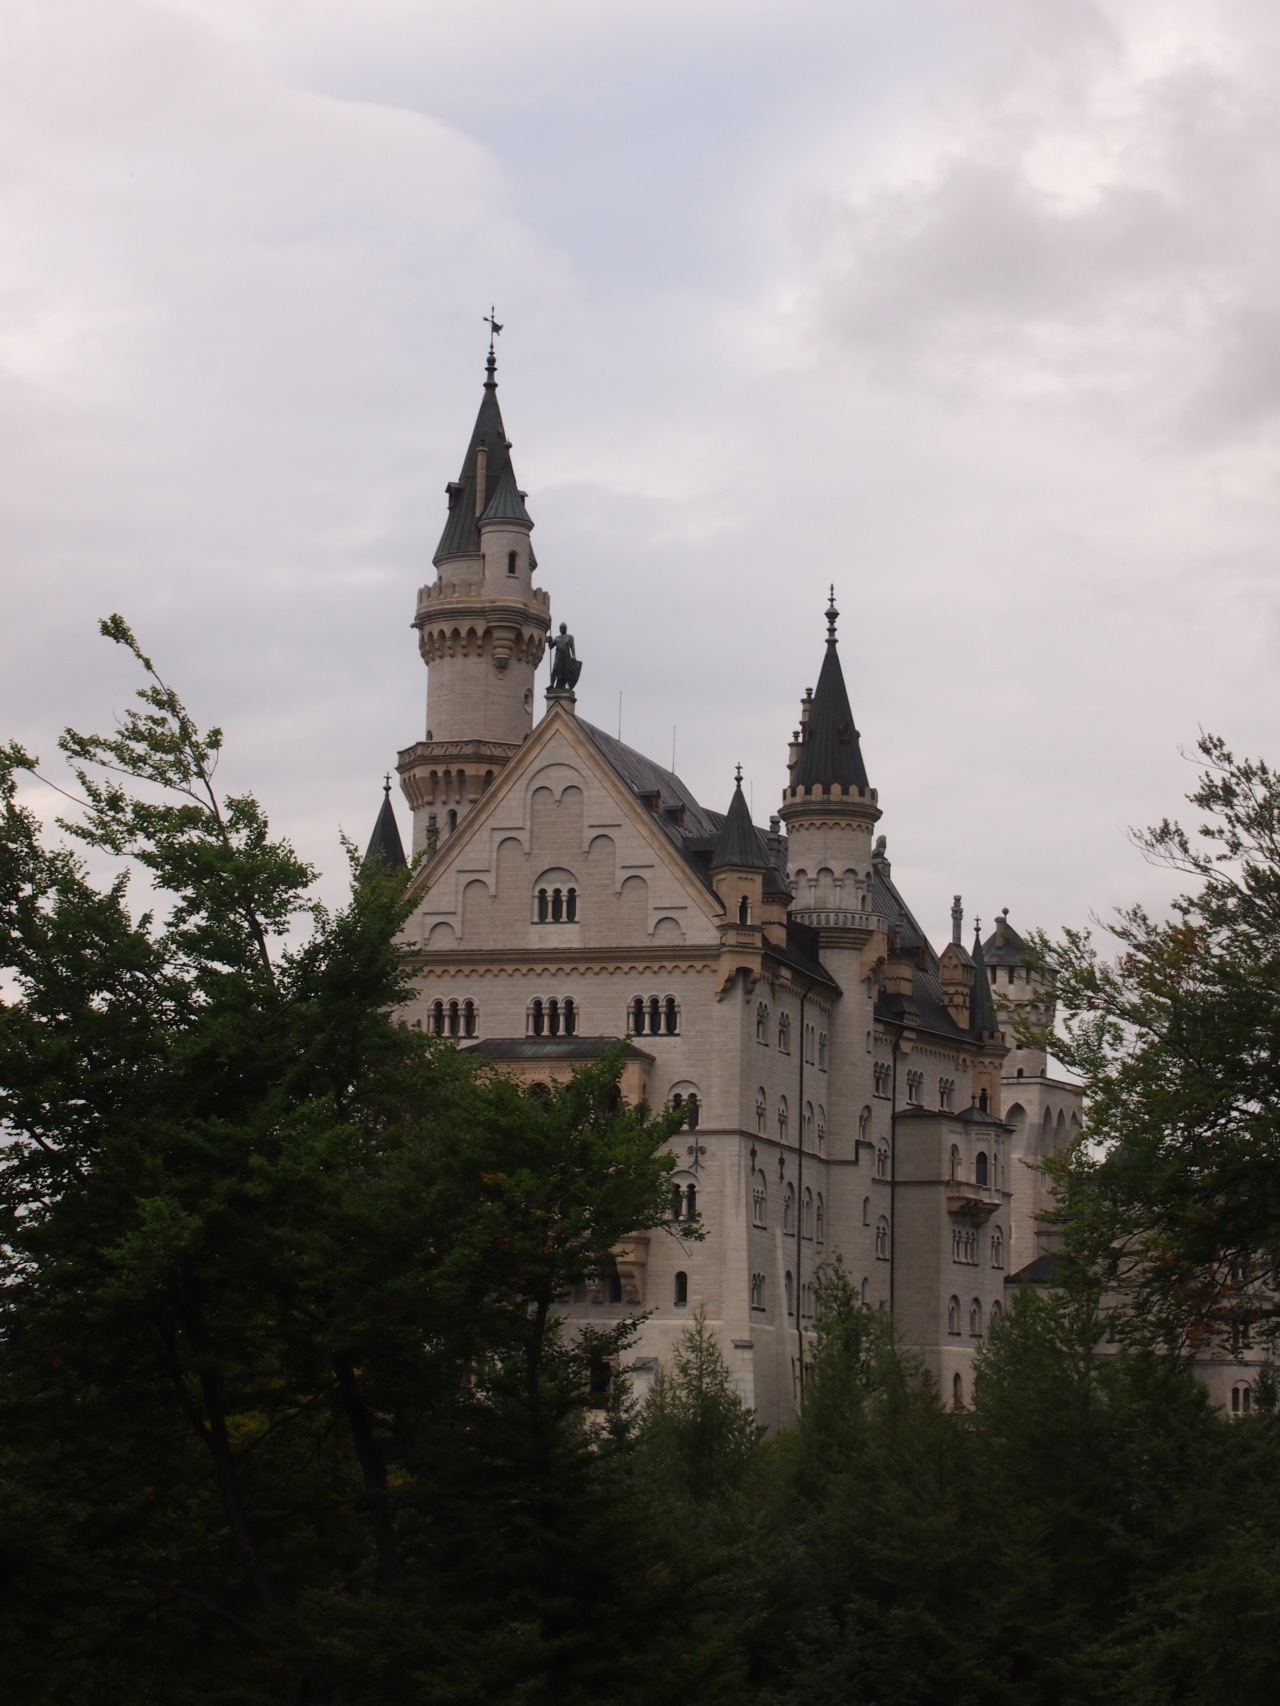 I'ts all about King Ludwig – the anticipated visit to NeuschwansteinCastle